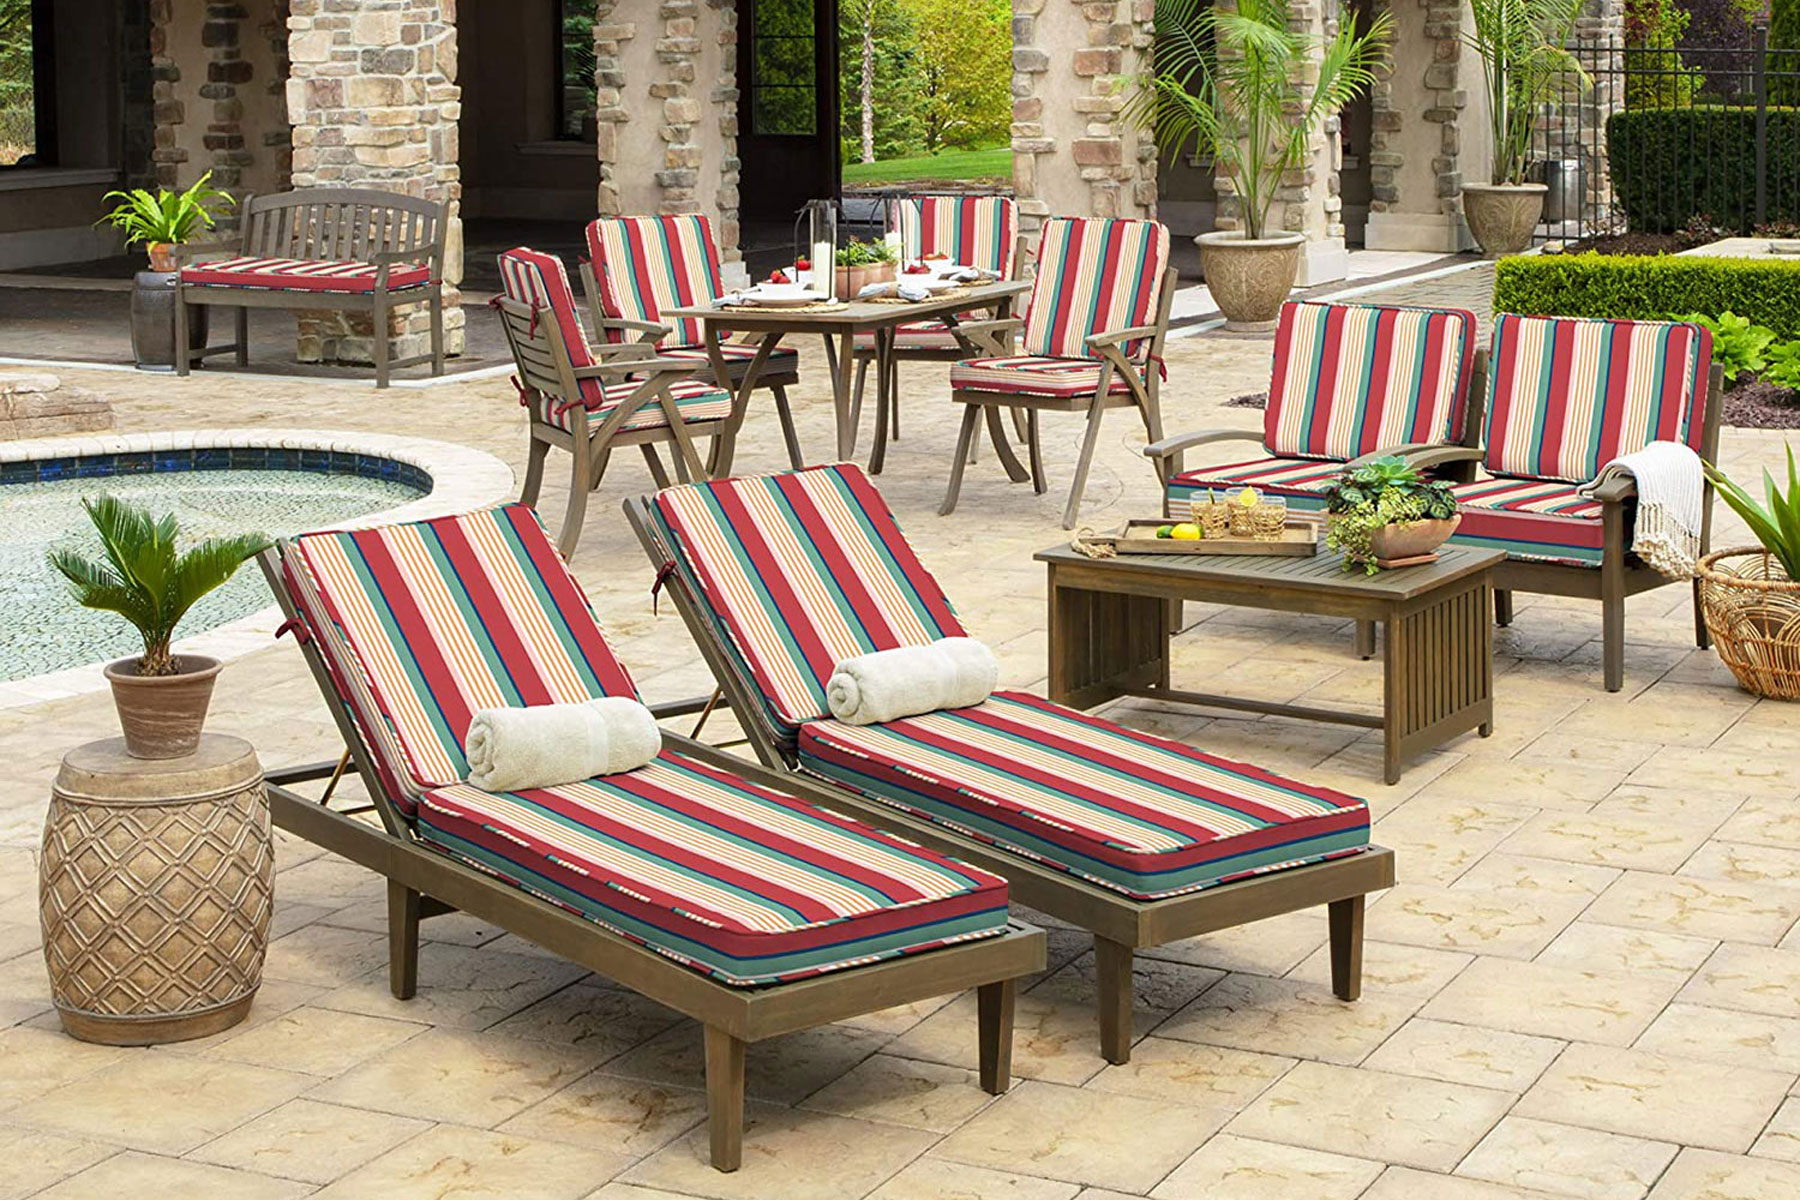 Red and tan striped wooden lounge chairs